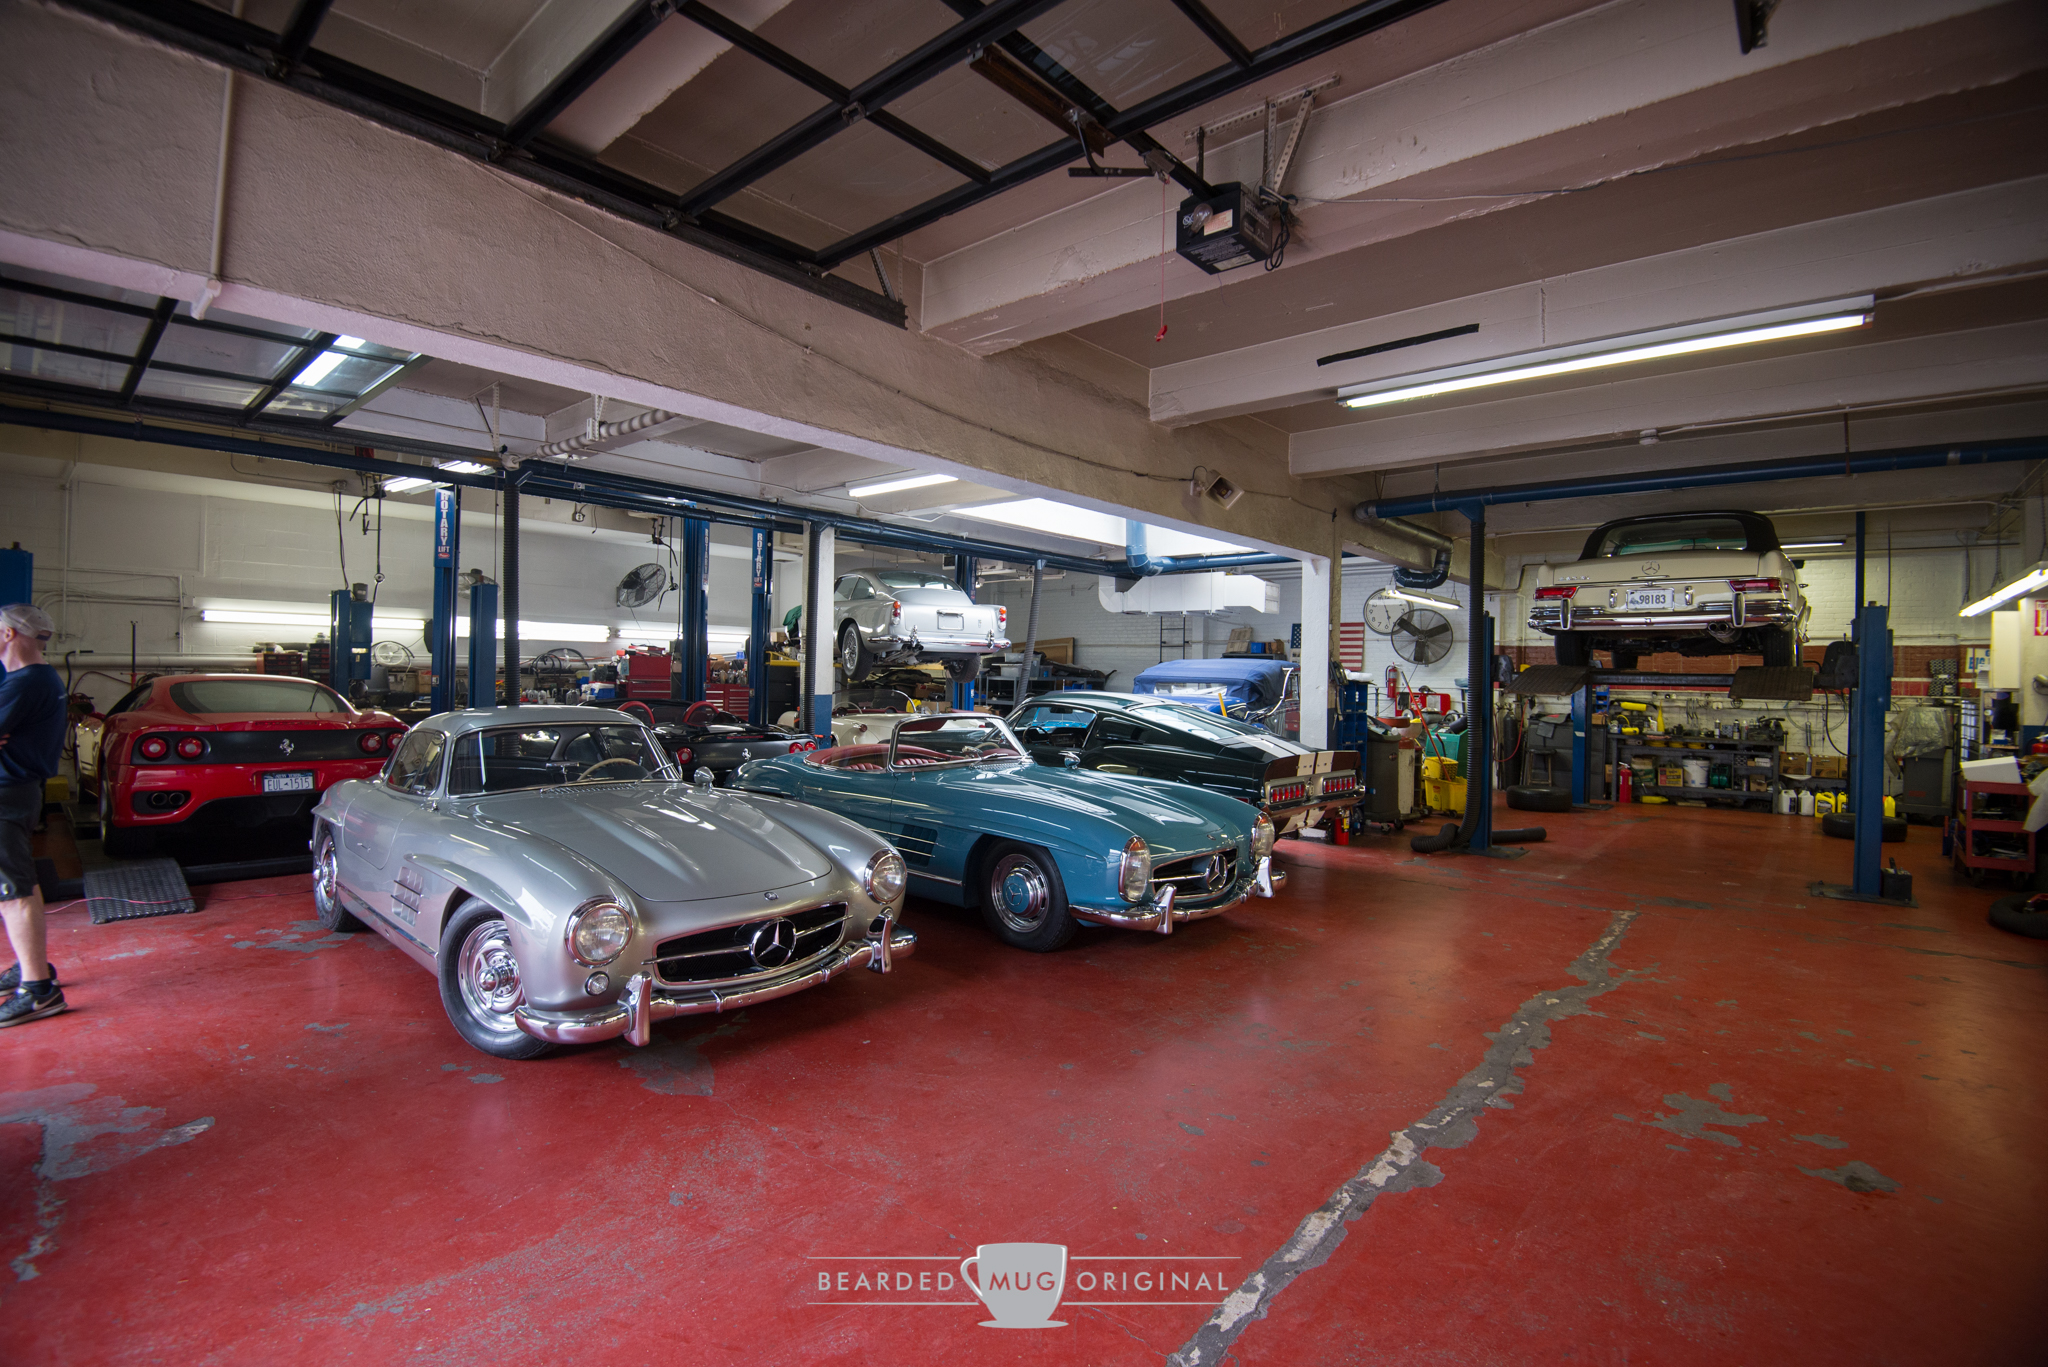 Inside the shop of Carriage House Motor Cars...take a good look or else you might miss some special treasure hiding in a corner.